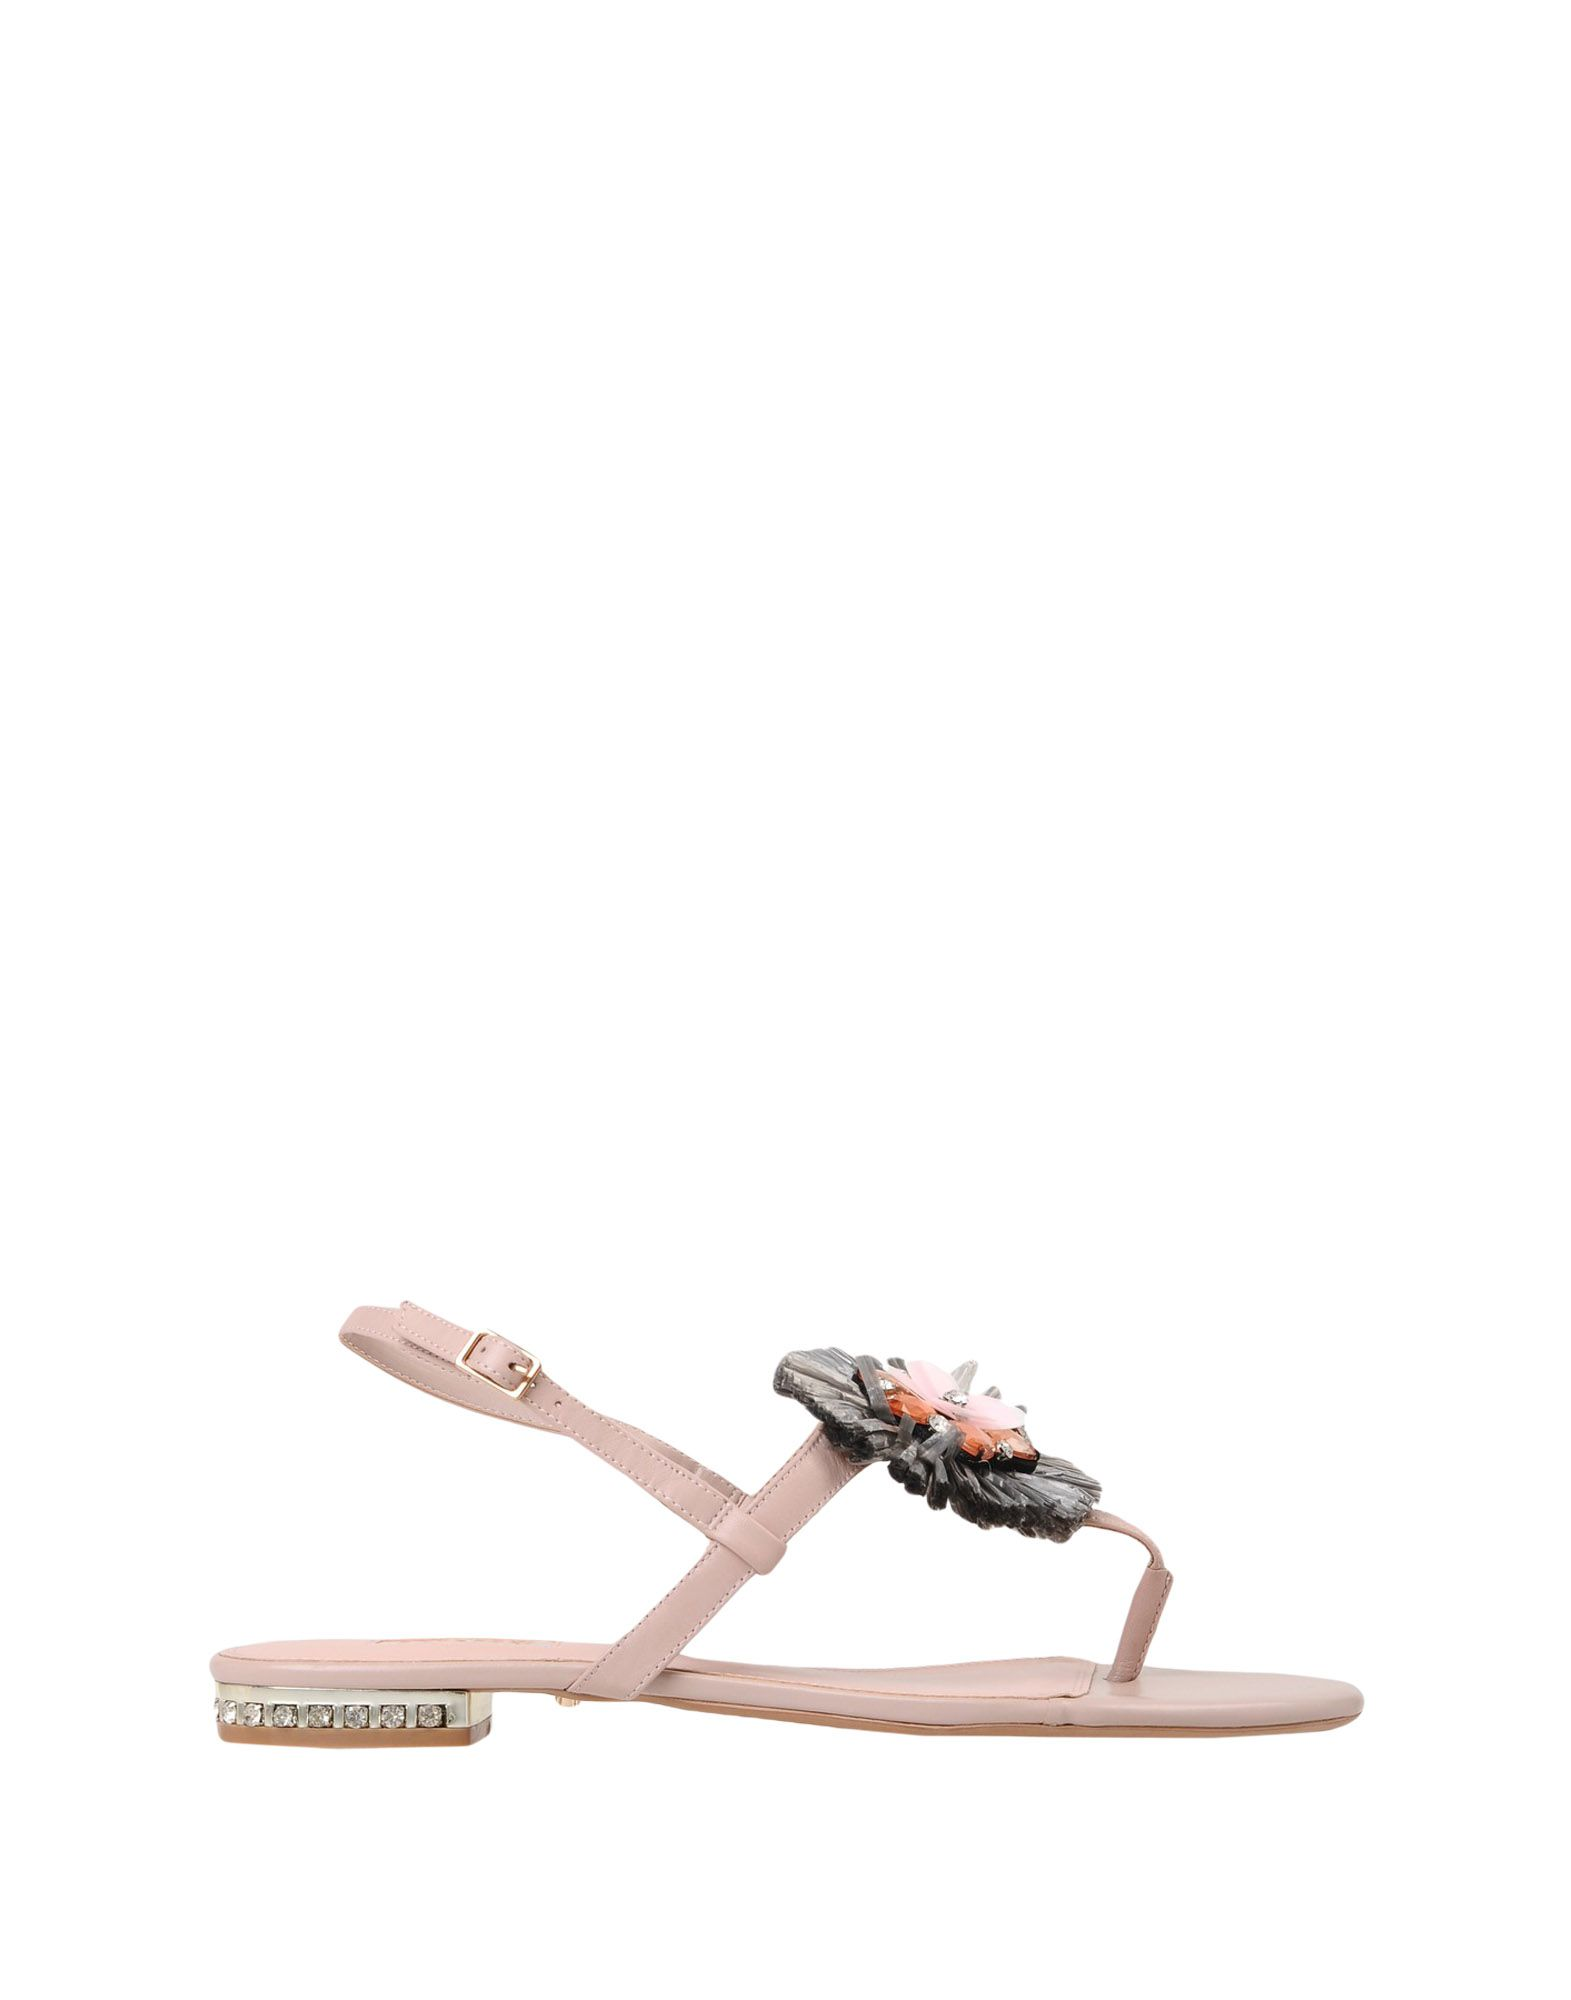 Tongs Dune London Loa - Femme - Tongs Dune London sur